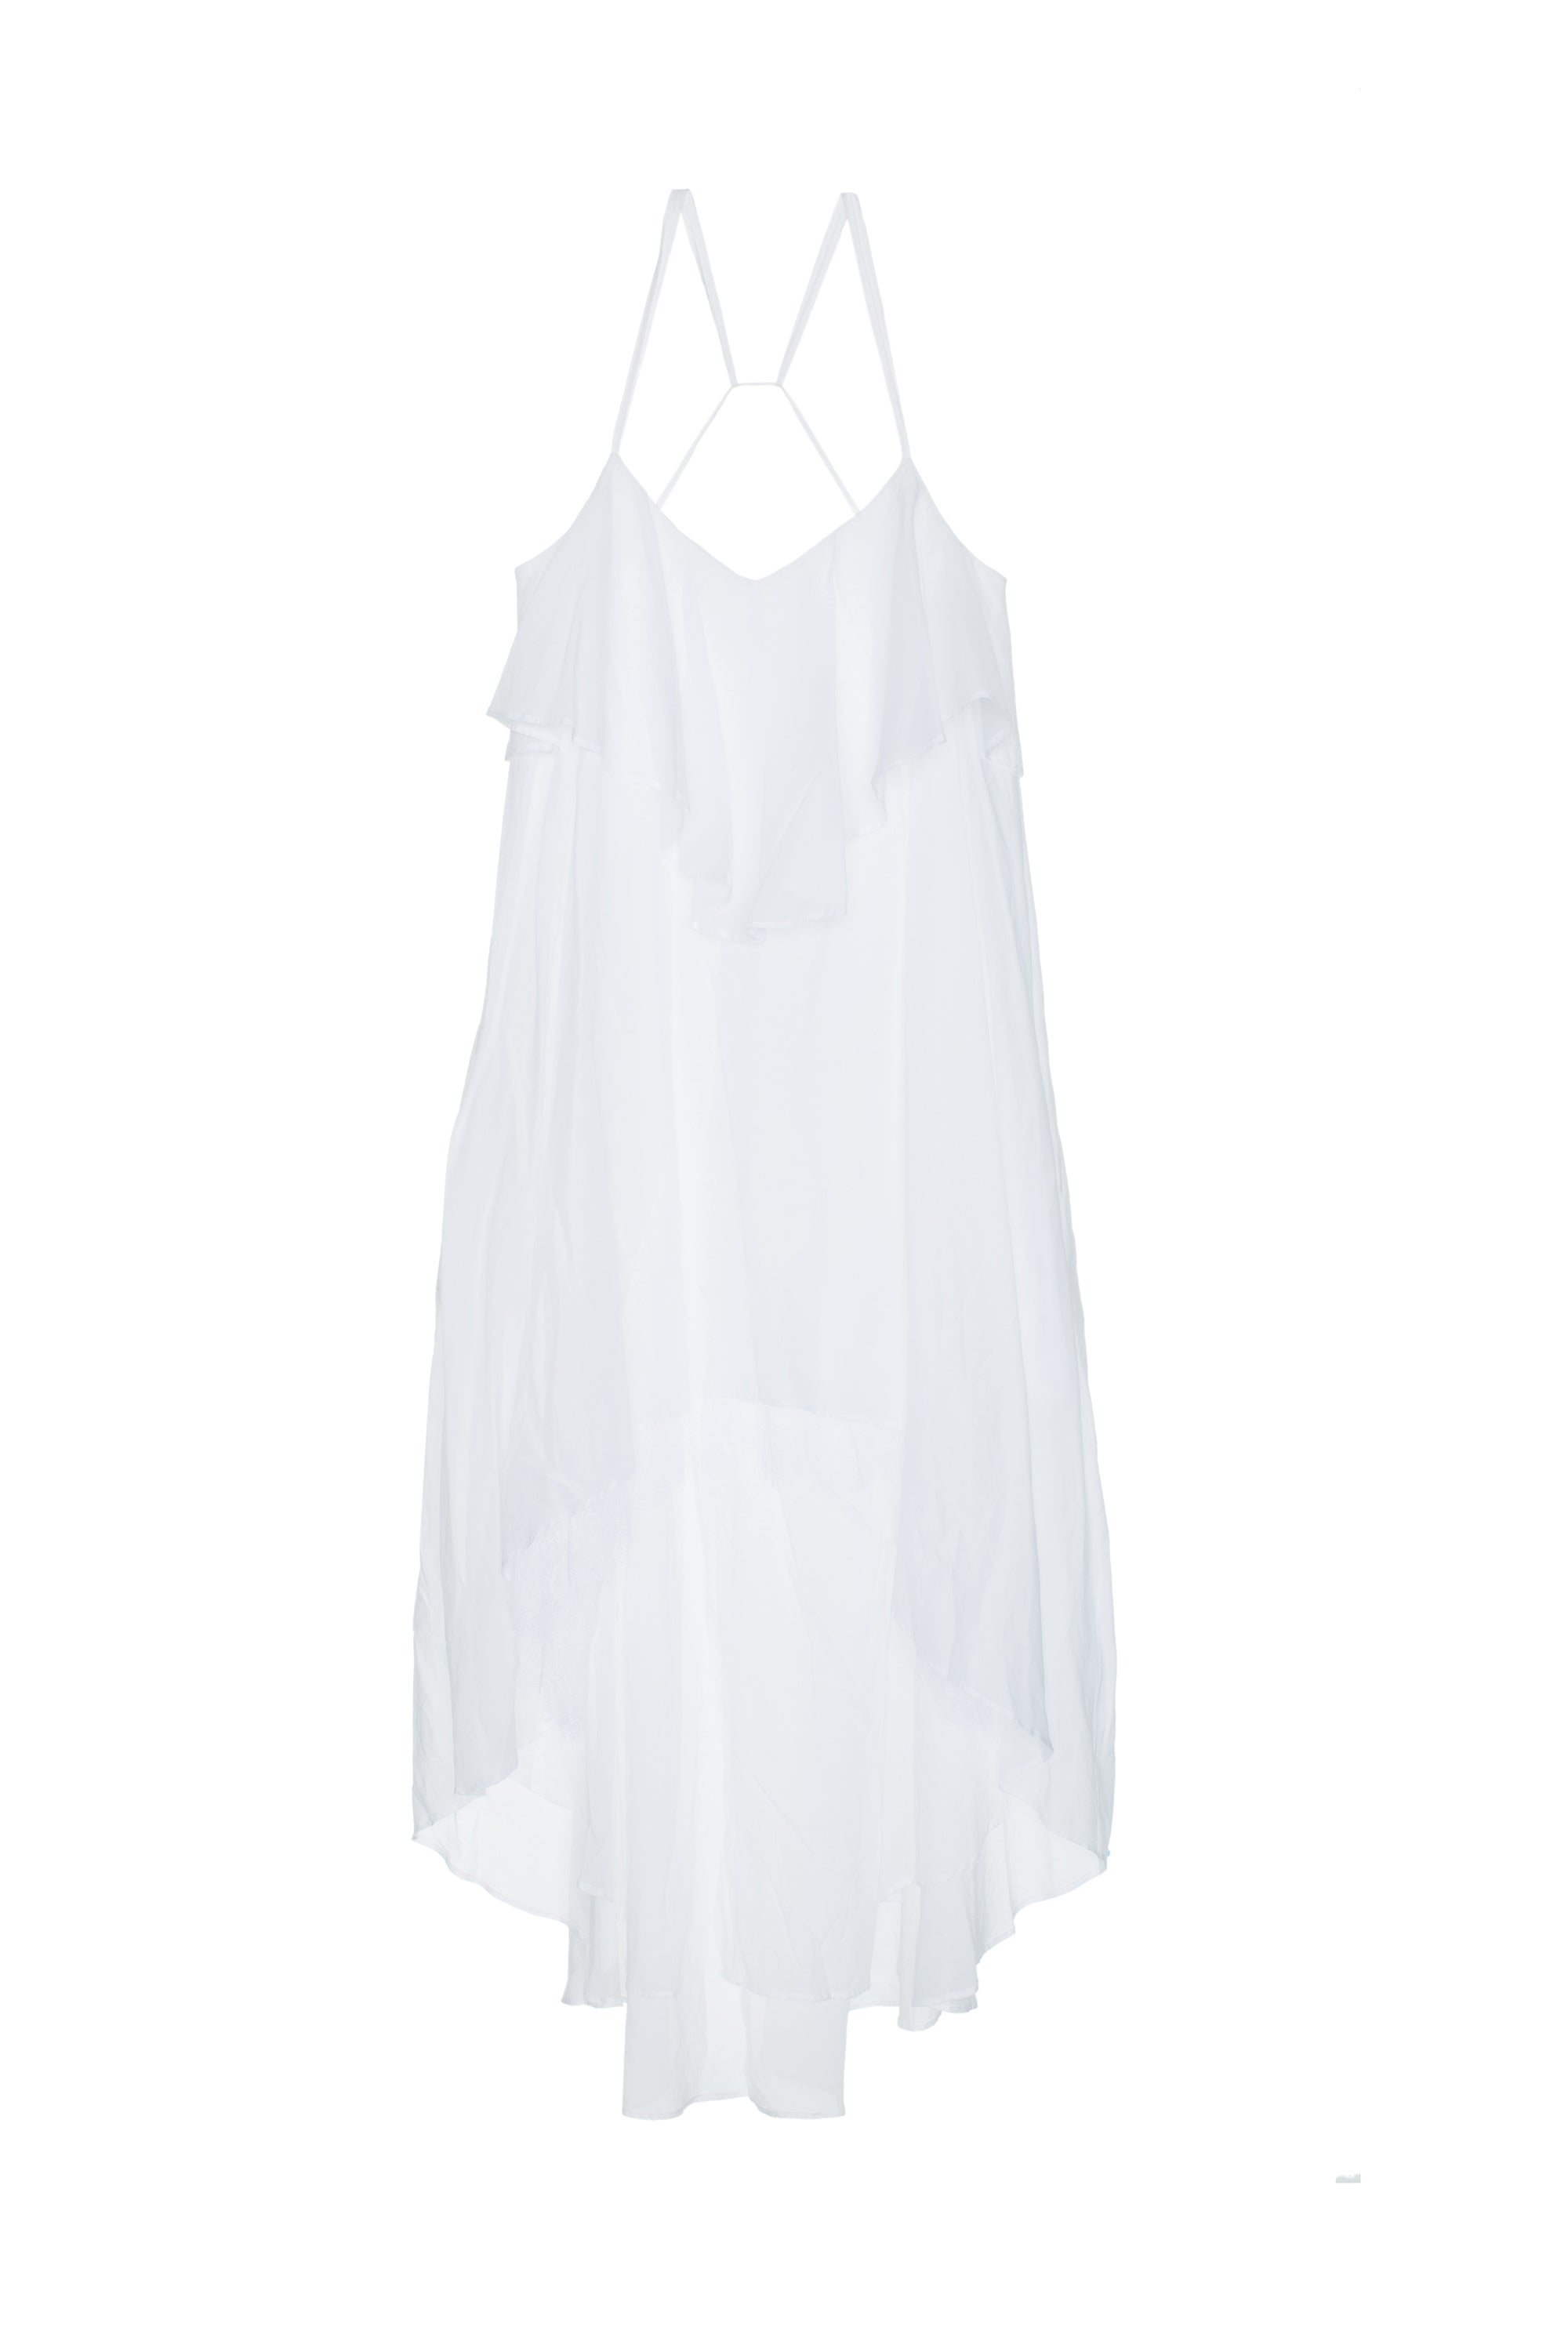 Paradiso Strappy Open Back Midi Dress in White